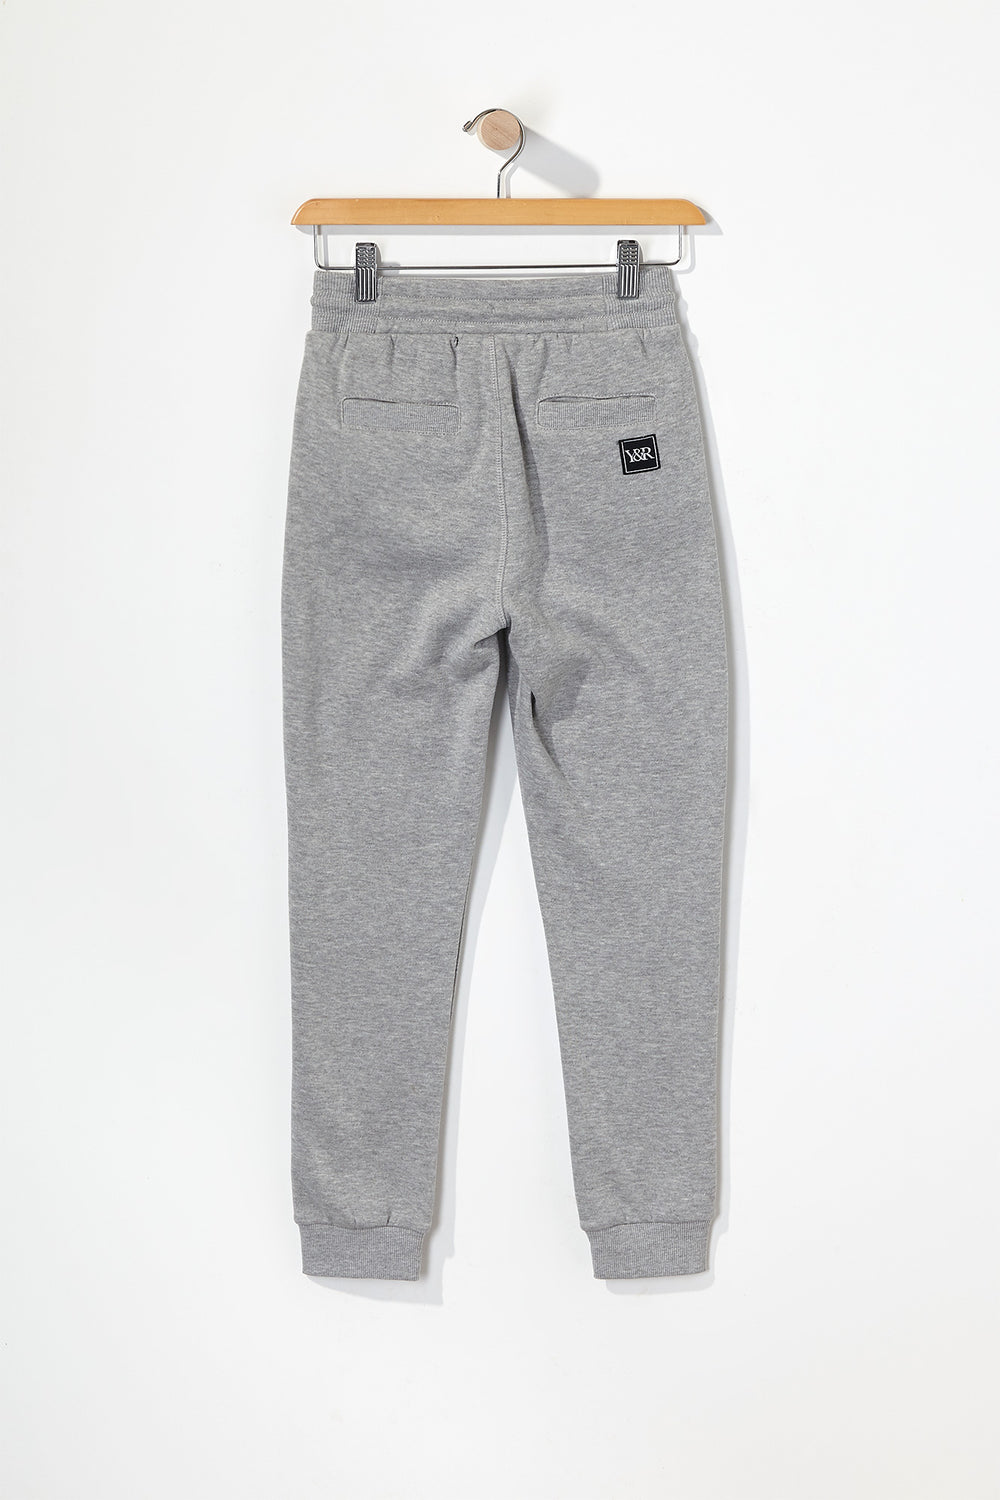 Young & Reckless Boys Neon Accent Joggers Heather Grey